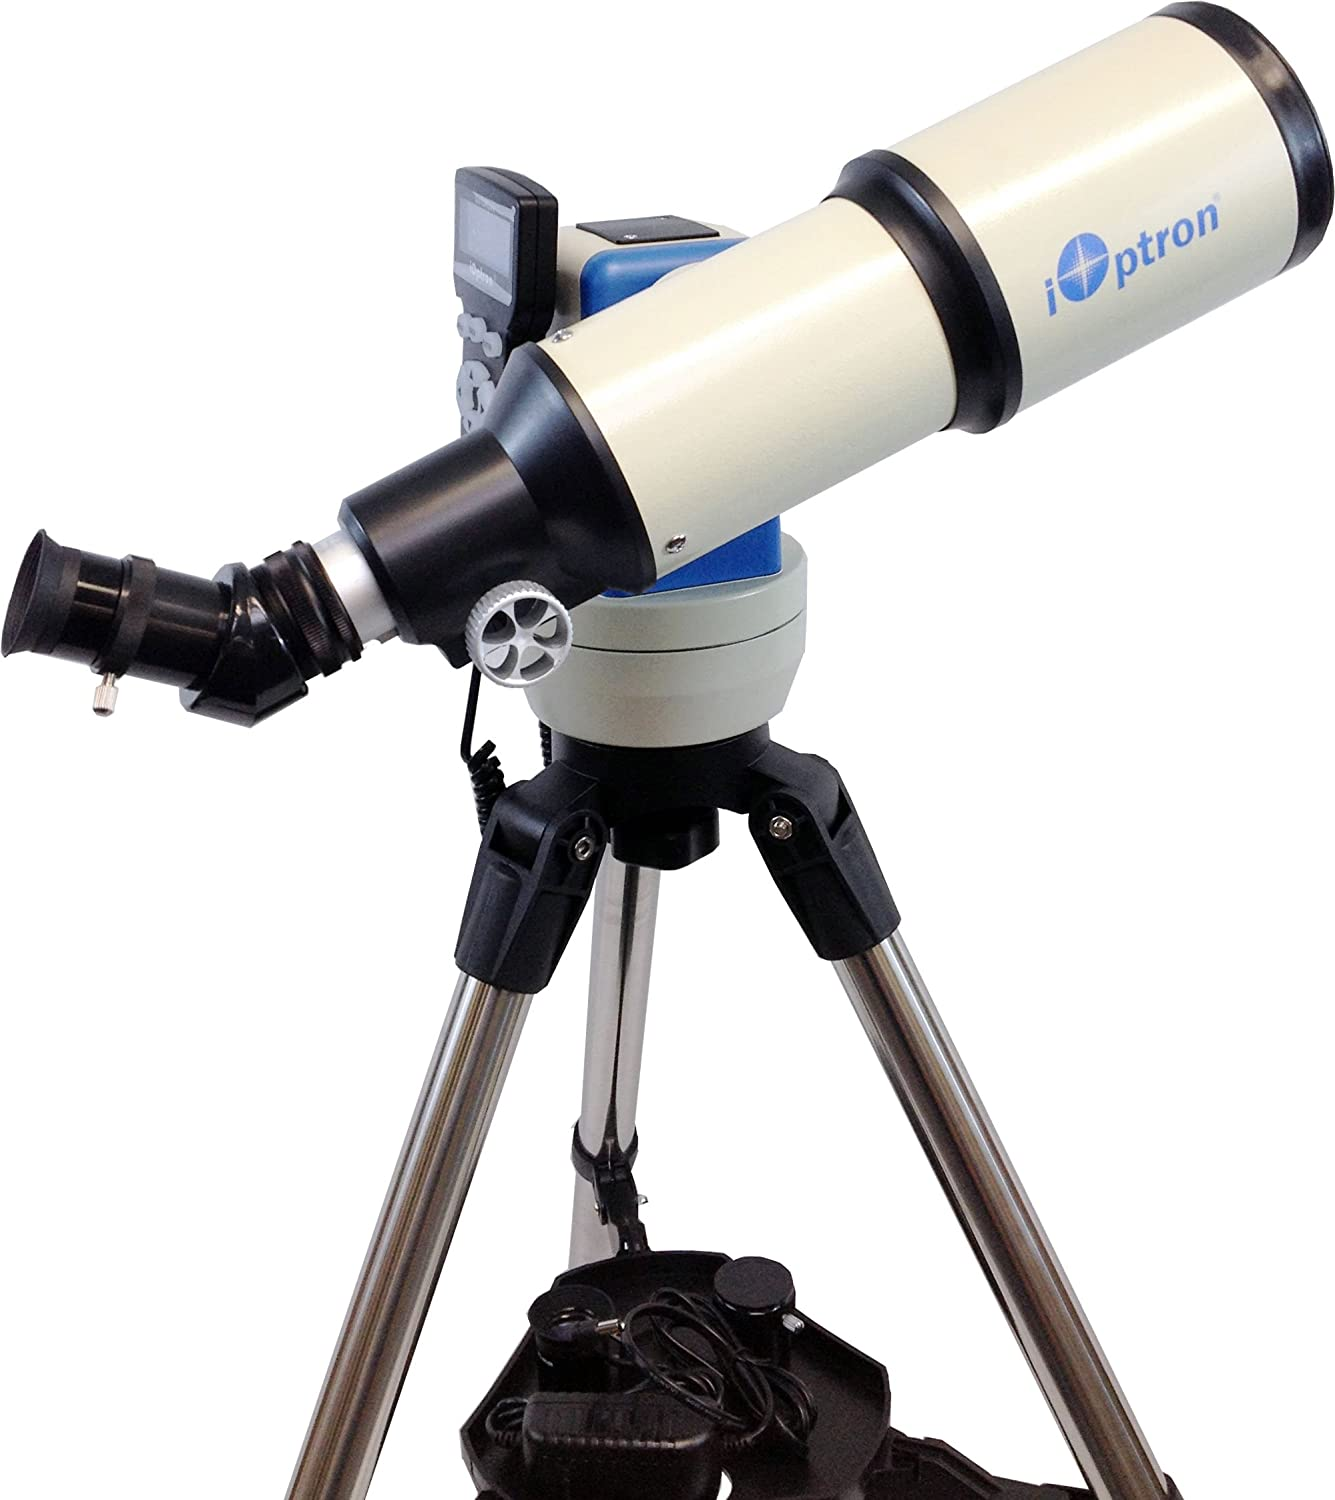 iOptron SmartStar-G-R80 8802R GPS Telescope (Cosmic Orange)